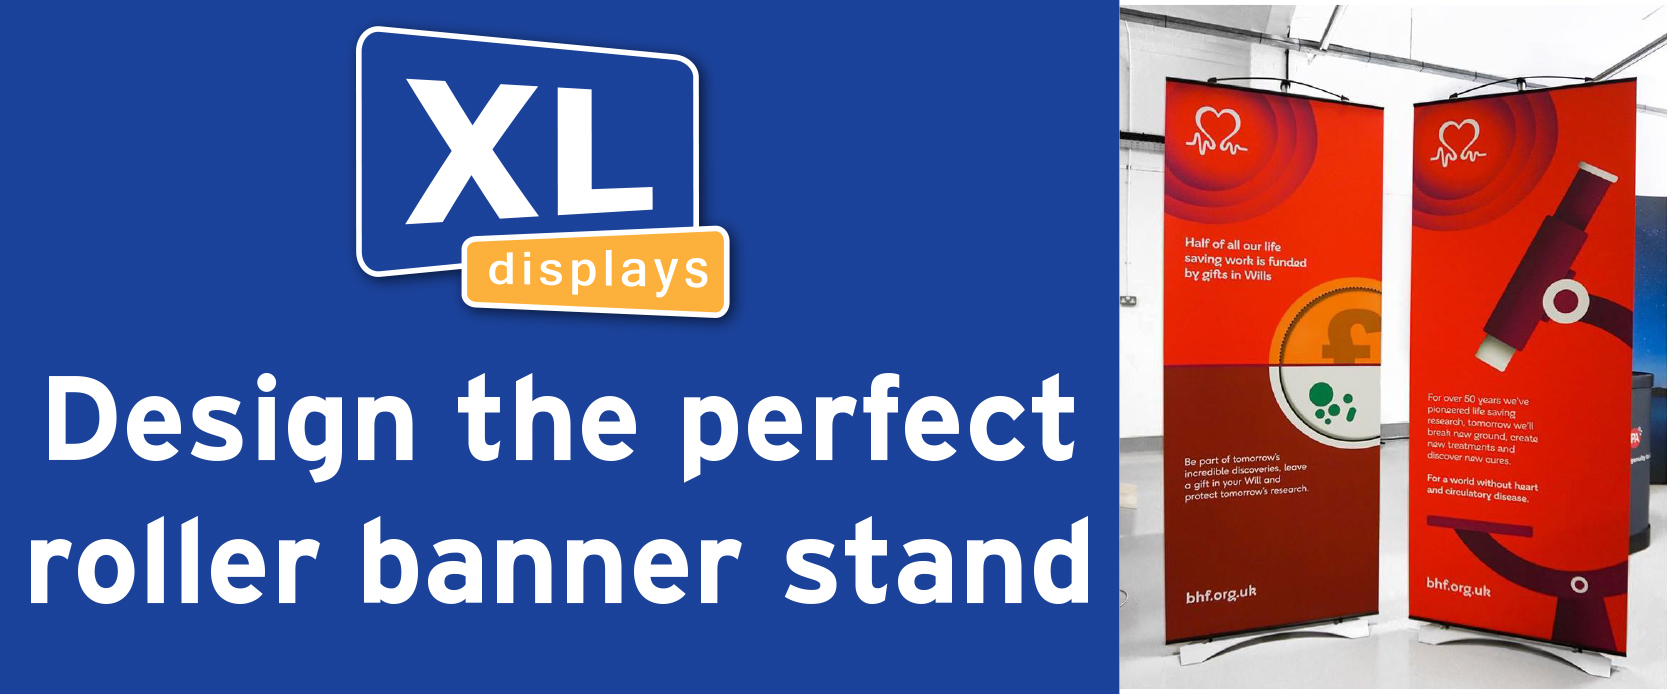 Design the perfect roller banner stand